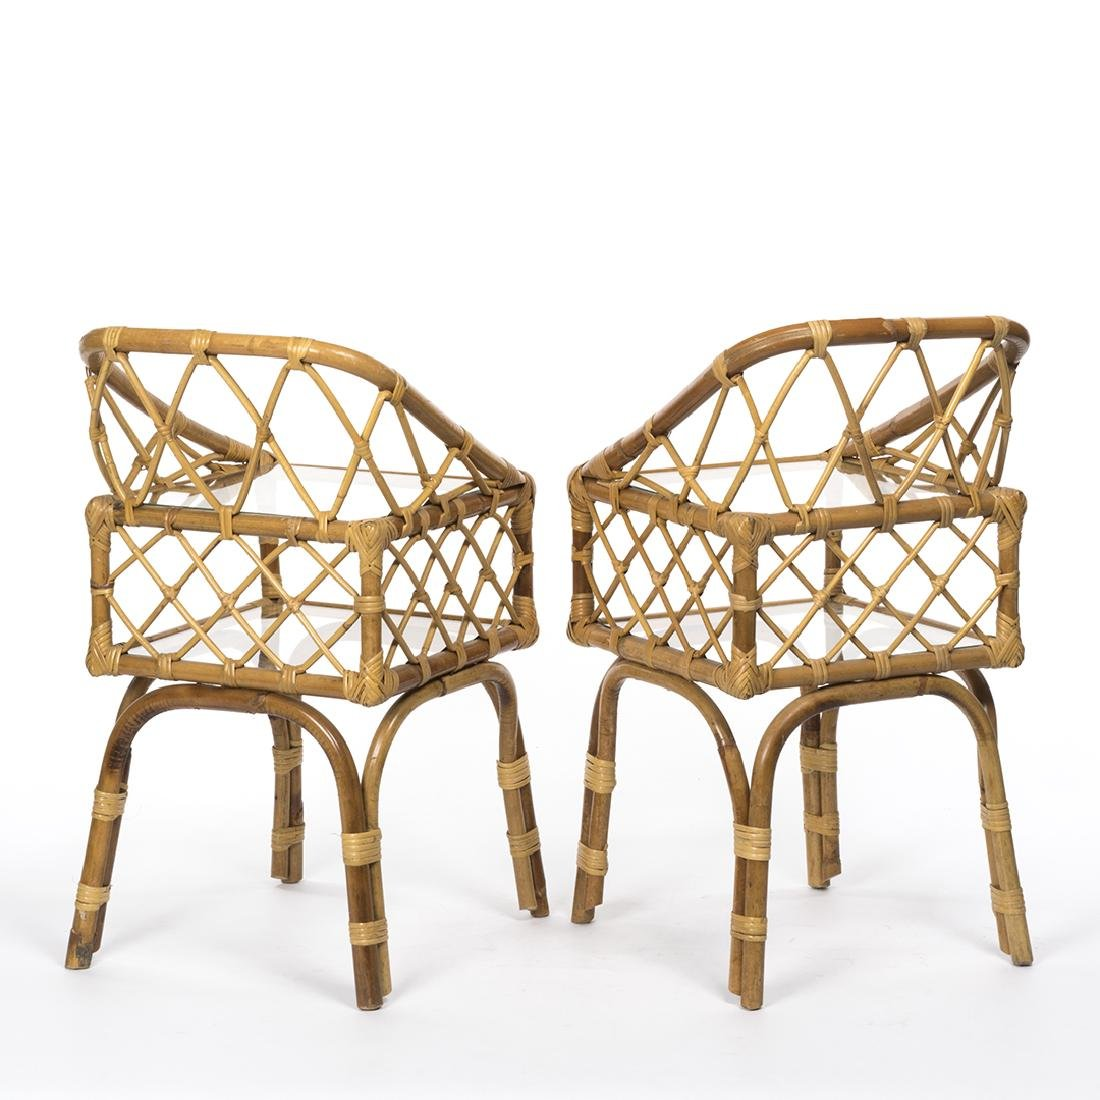 Rattan Side Tables (2) - 3